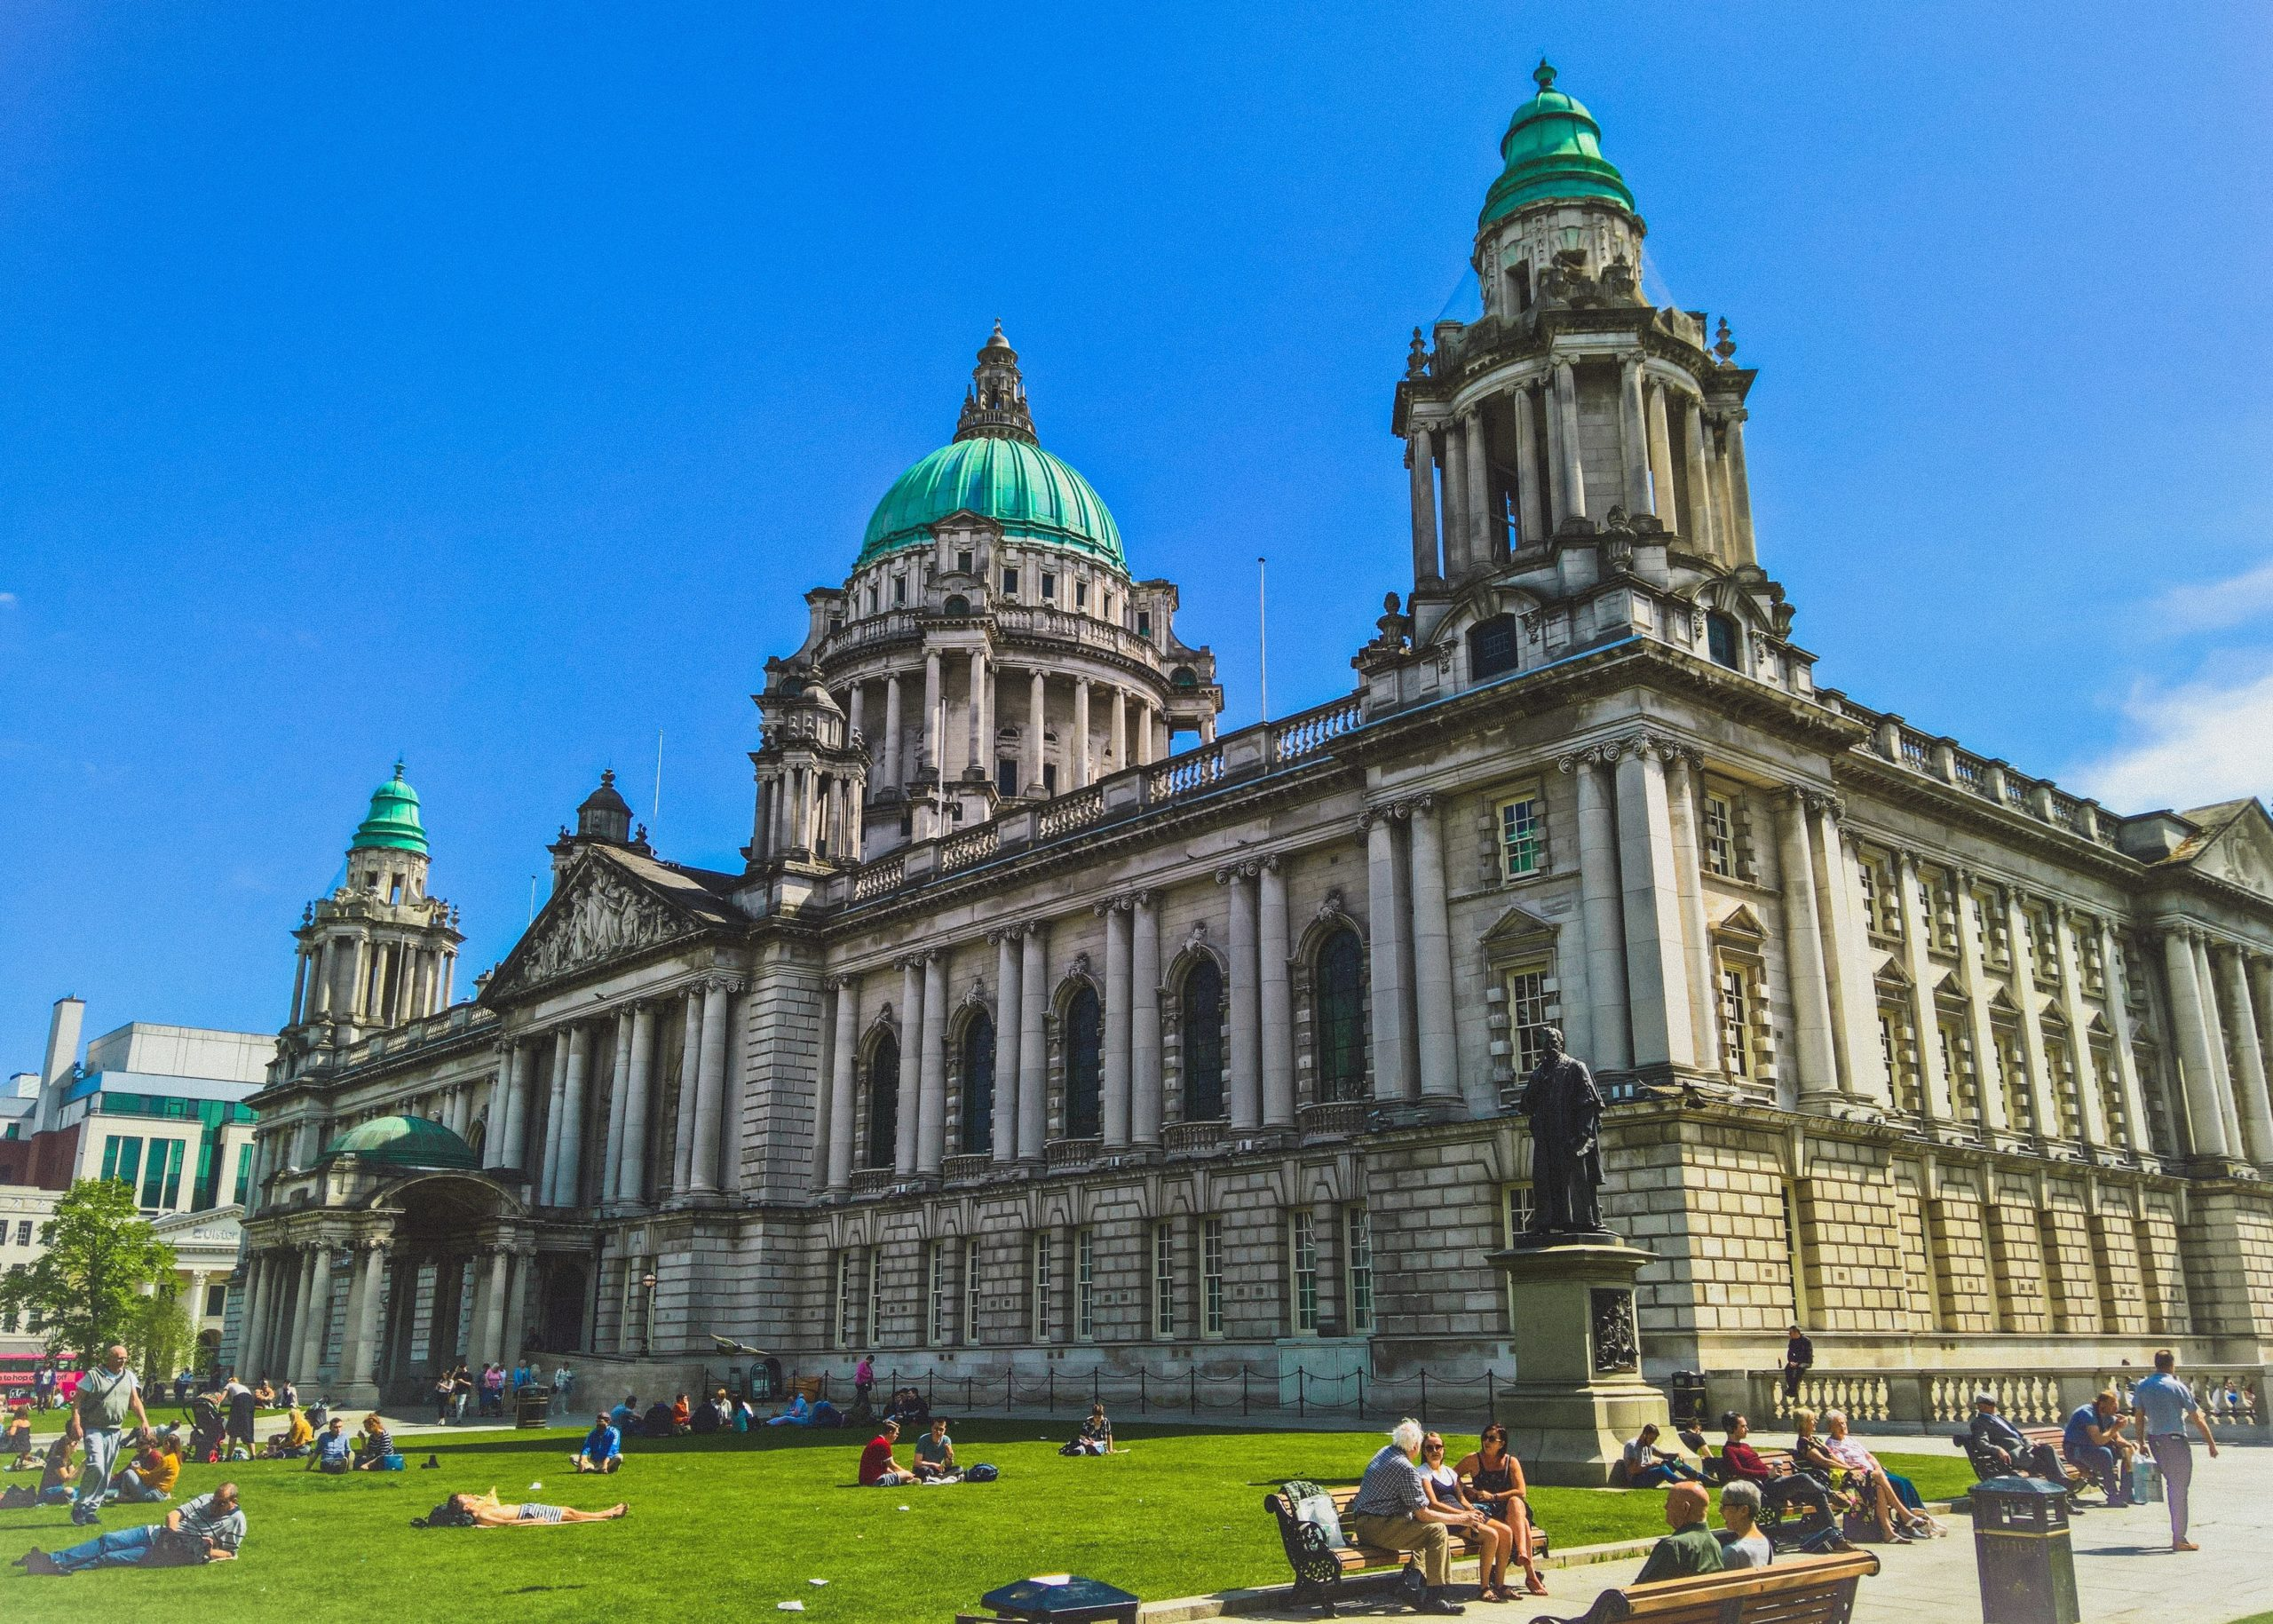 The Best Cities to Visit in the UK 2